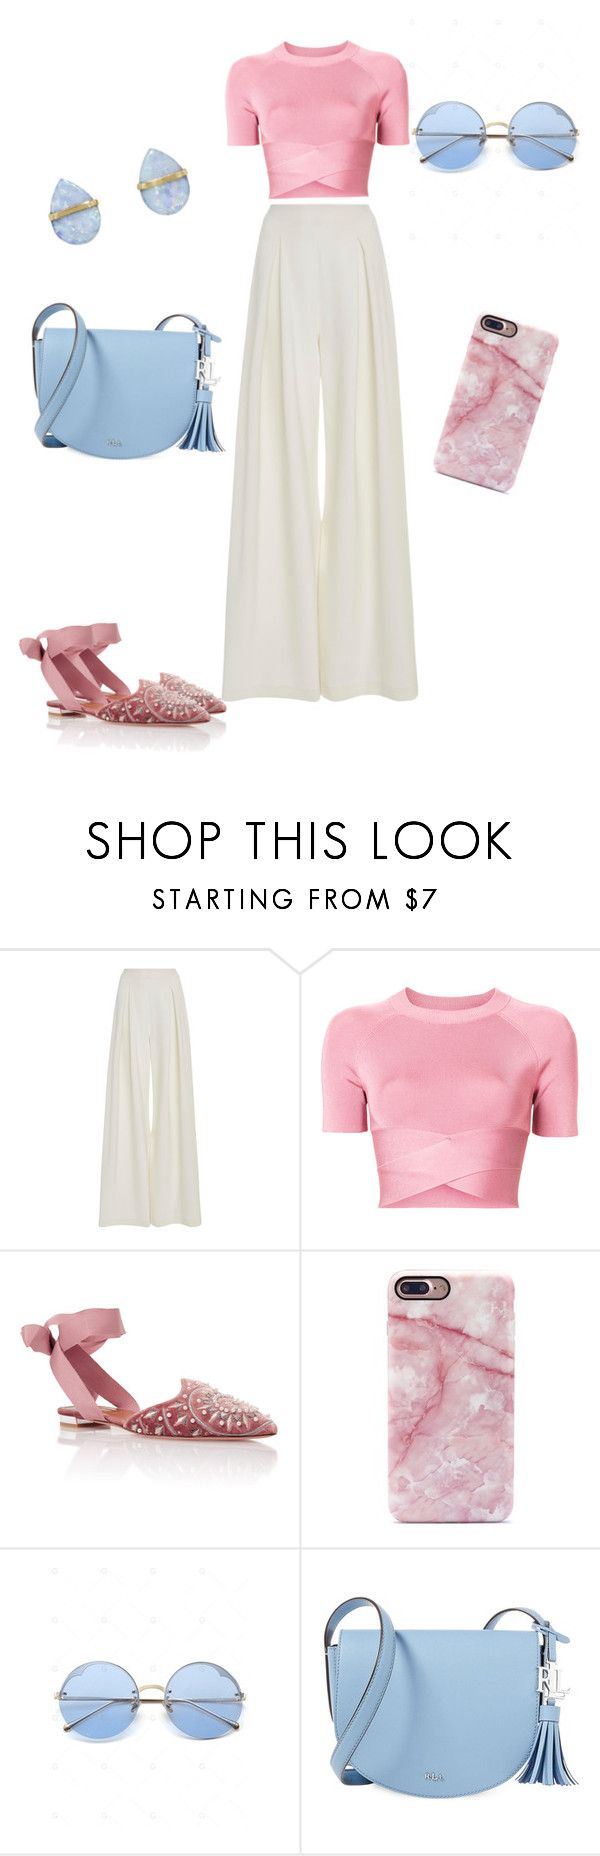 """Pink top!!"" by yuki-shockey on Polyvore featuring Christian Siriano, T By Alexander Wang, Tabitha Simmons, Lauren Ralph Lauren and Melissa Joy Manning"